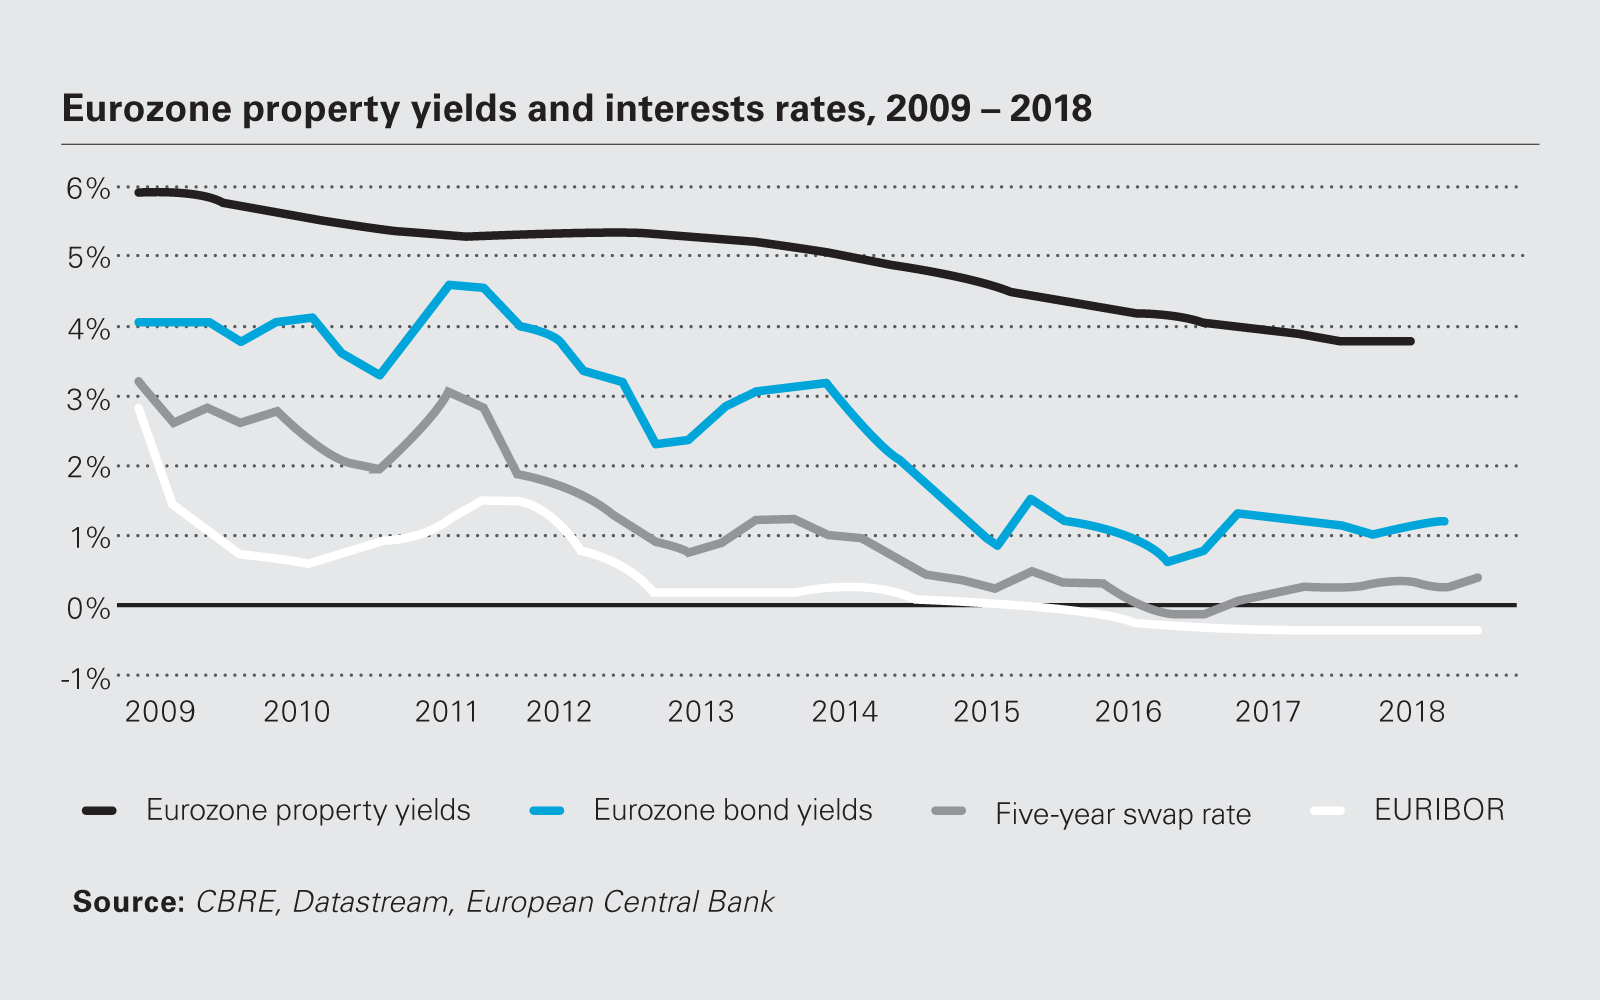 Image chart Eurozone property yields and interests rates, 2009-2018